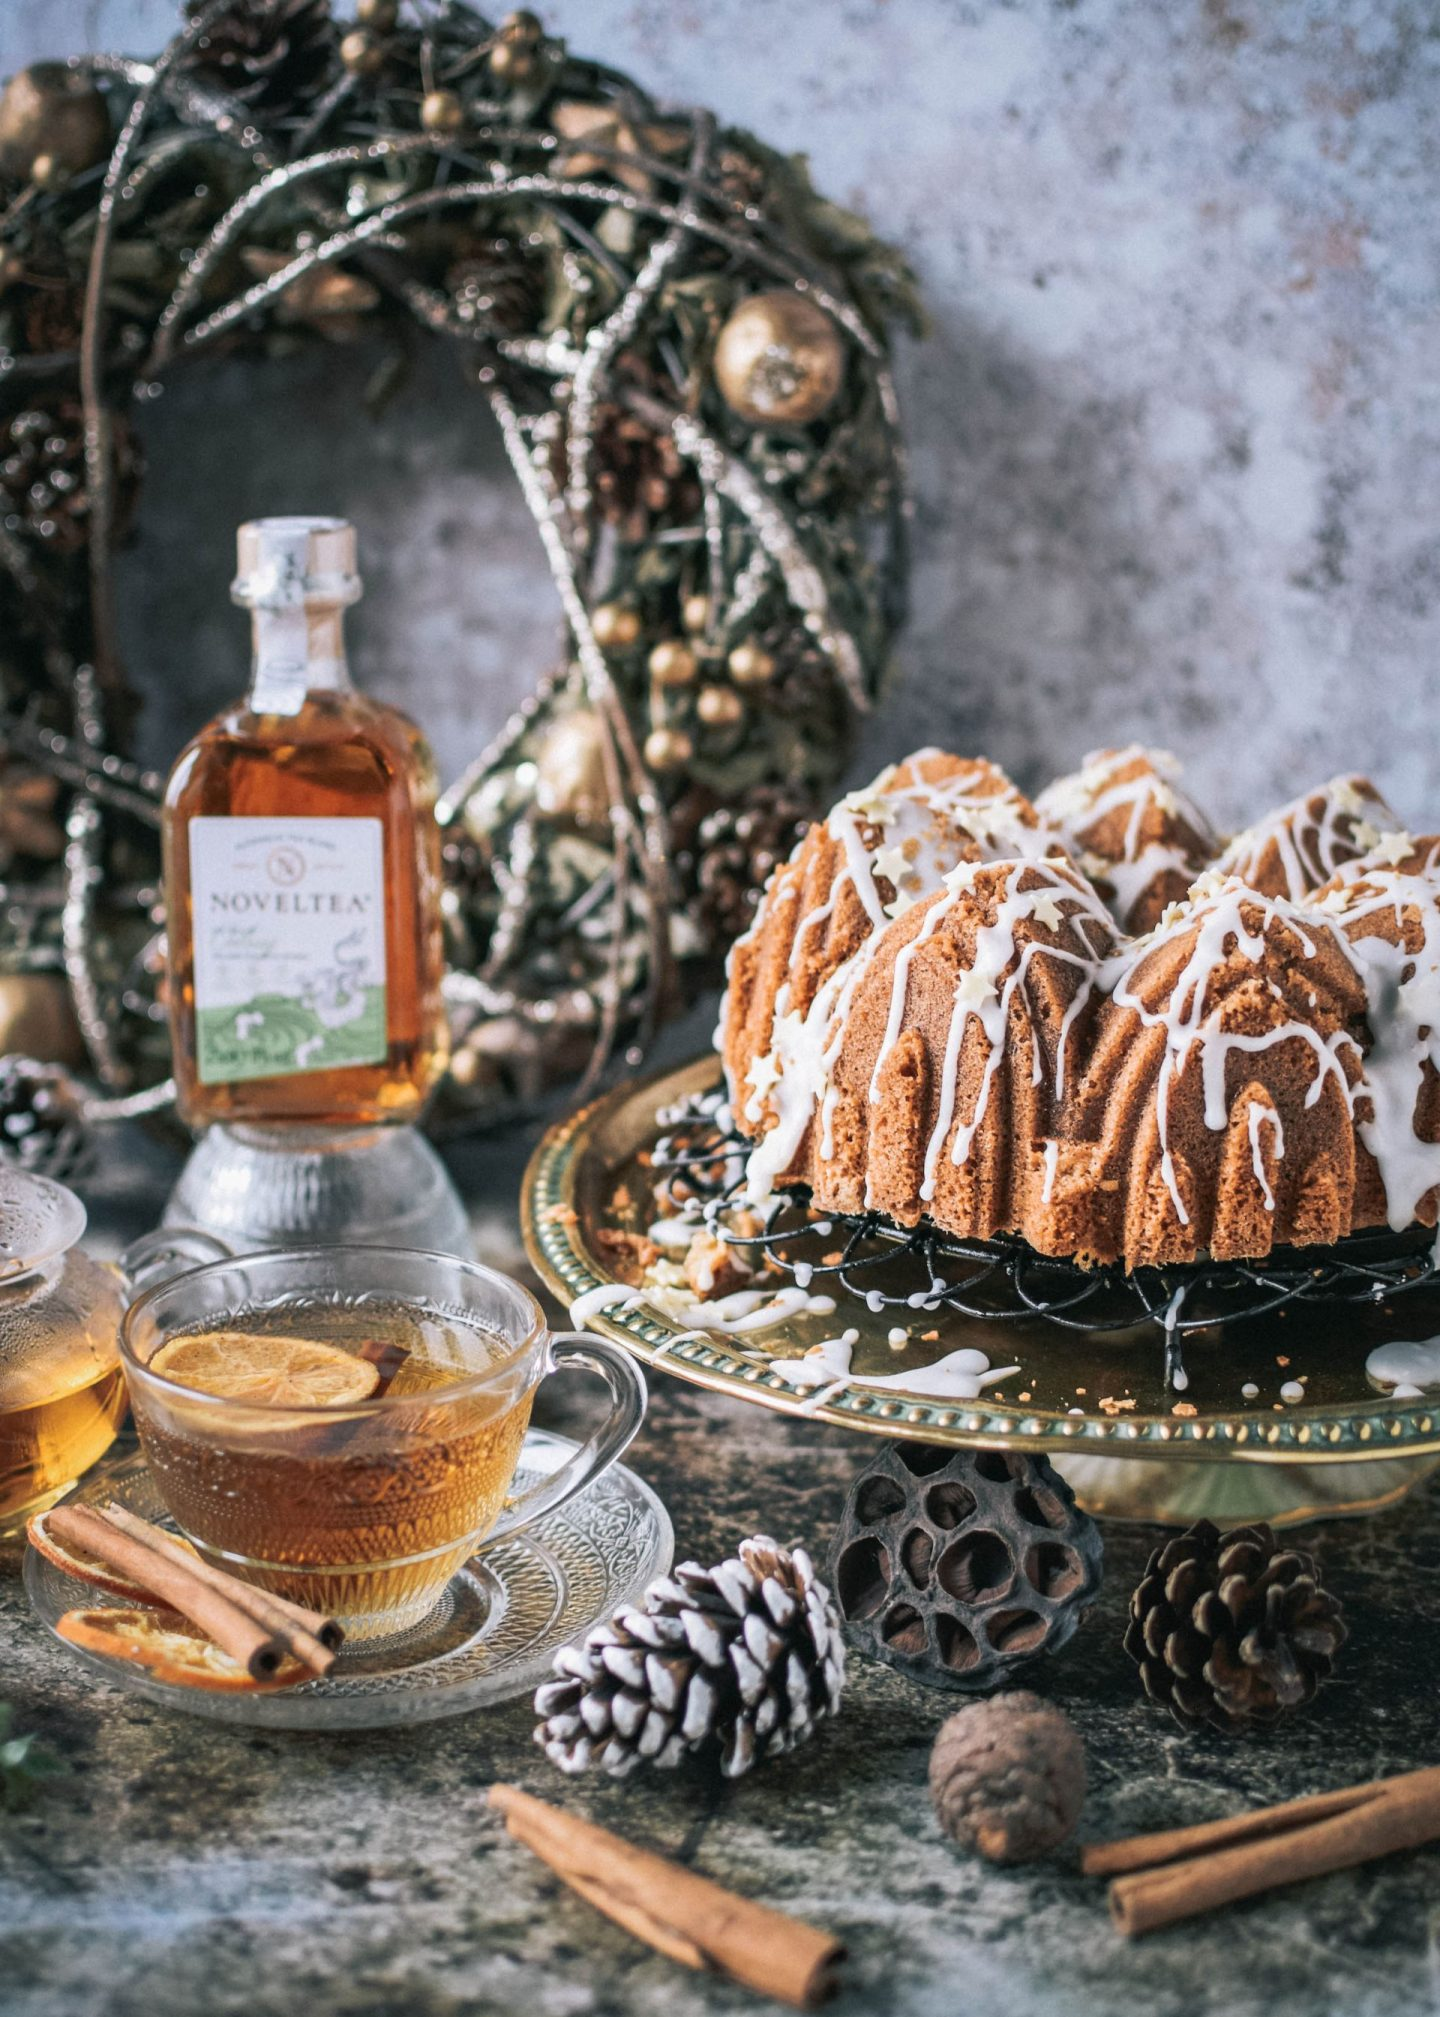 Hot Toddy Cake with Noveltea